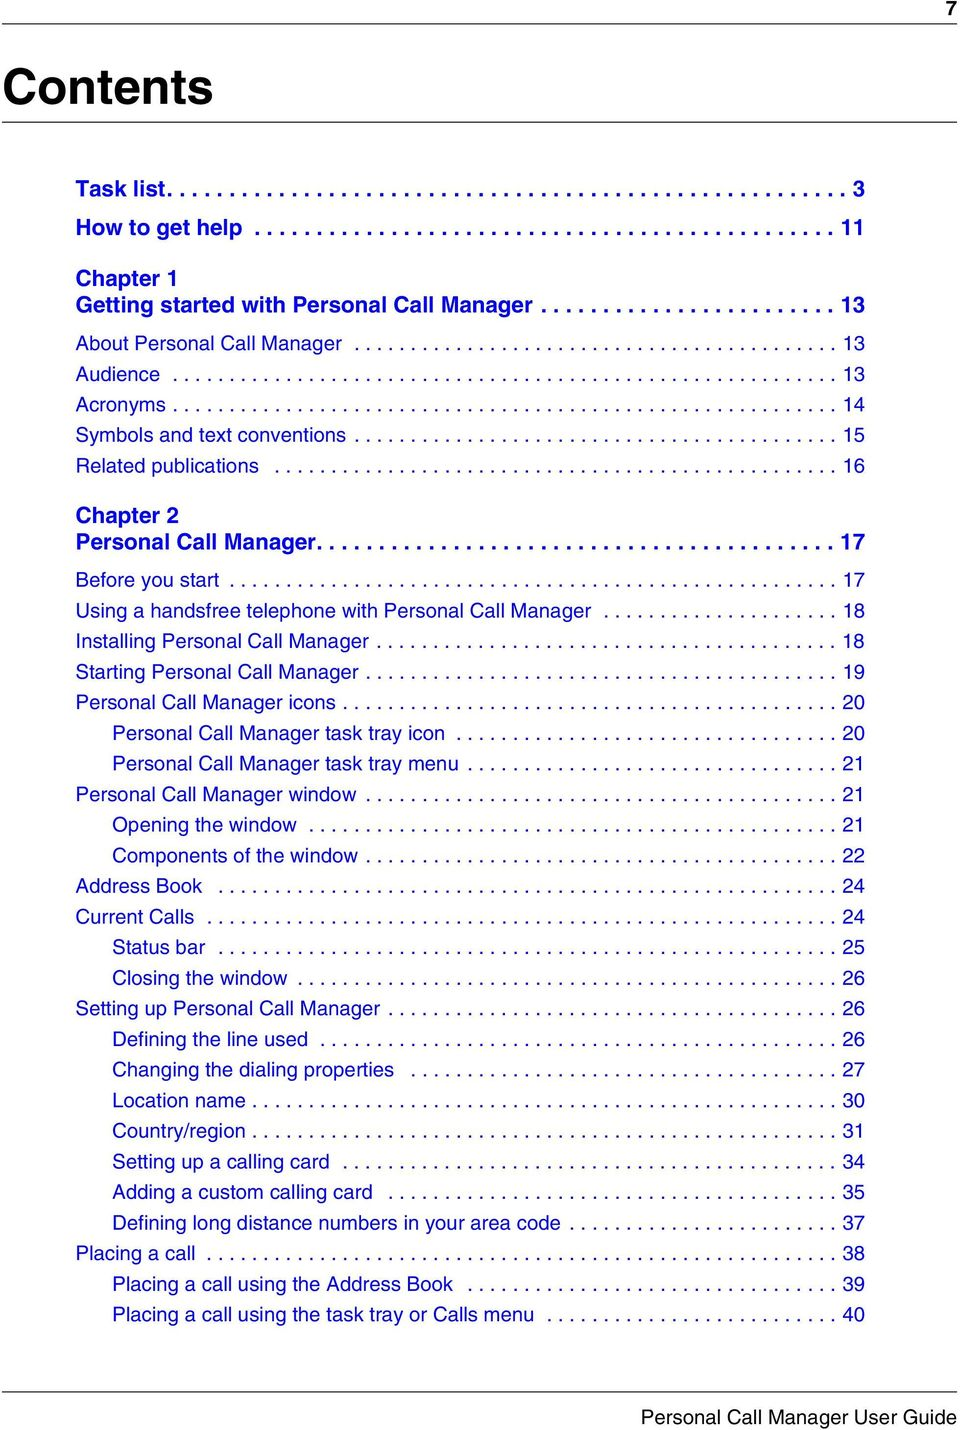 .......................................................... 14 Symbols and text conventions........................................... 15 Related publications.................................................. 16 Chapter 2 Personal Call Manager.